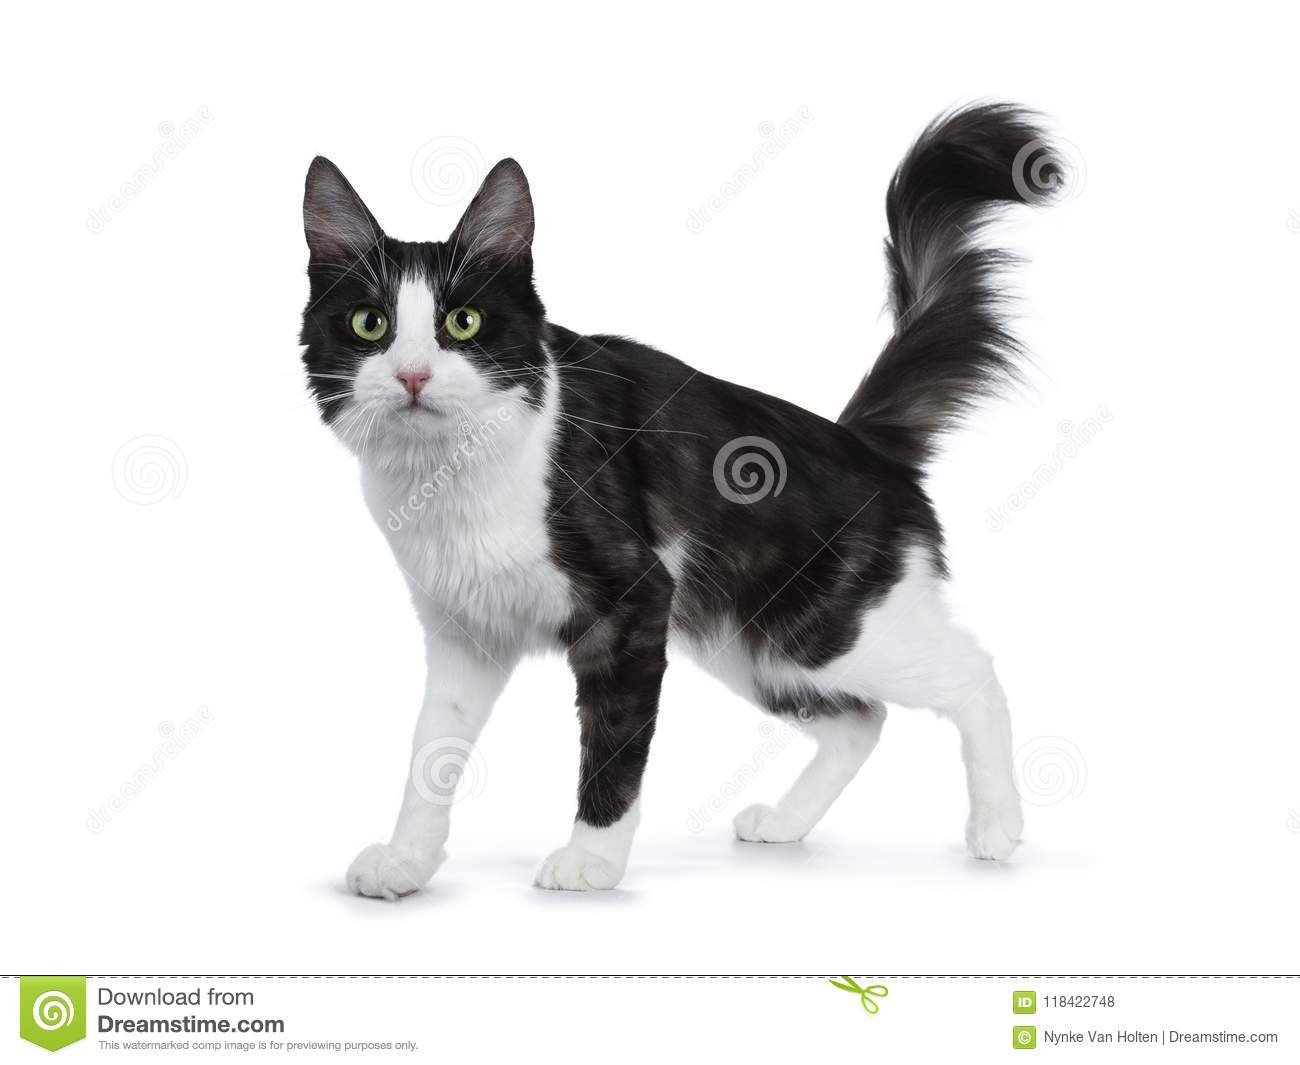 665b9e27d5 Cute Black Smoke With White Turkish Angora Cat Standing Side Ways On ...